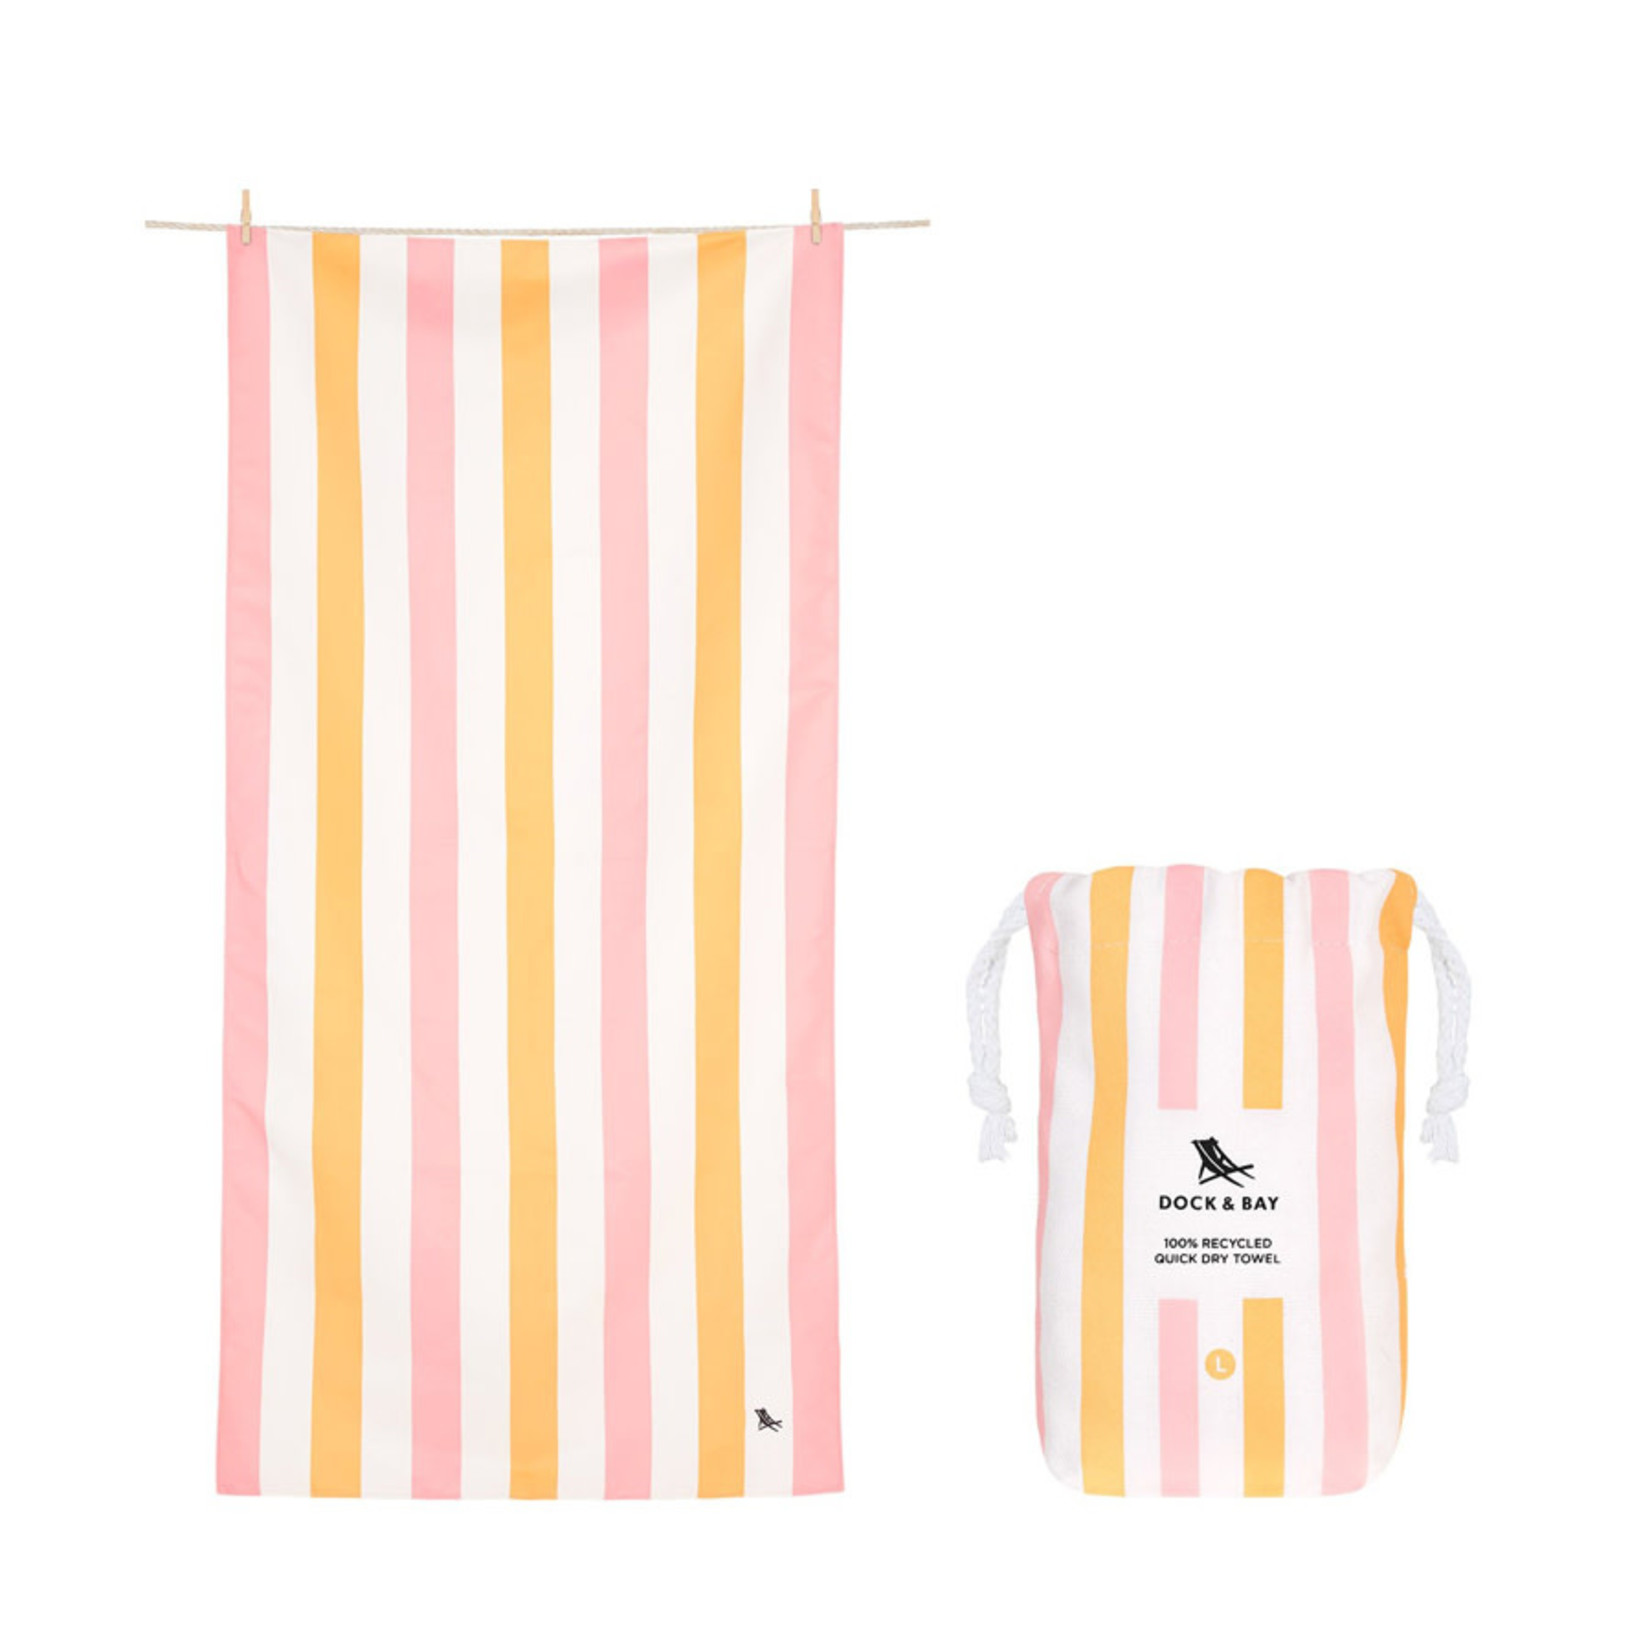 Dock & Bay Quick Dry Beach Towel Summer Collection